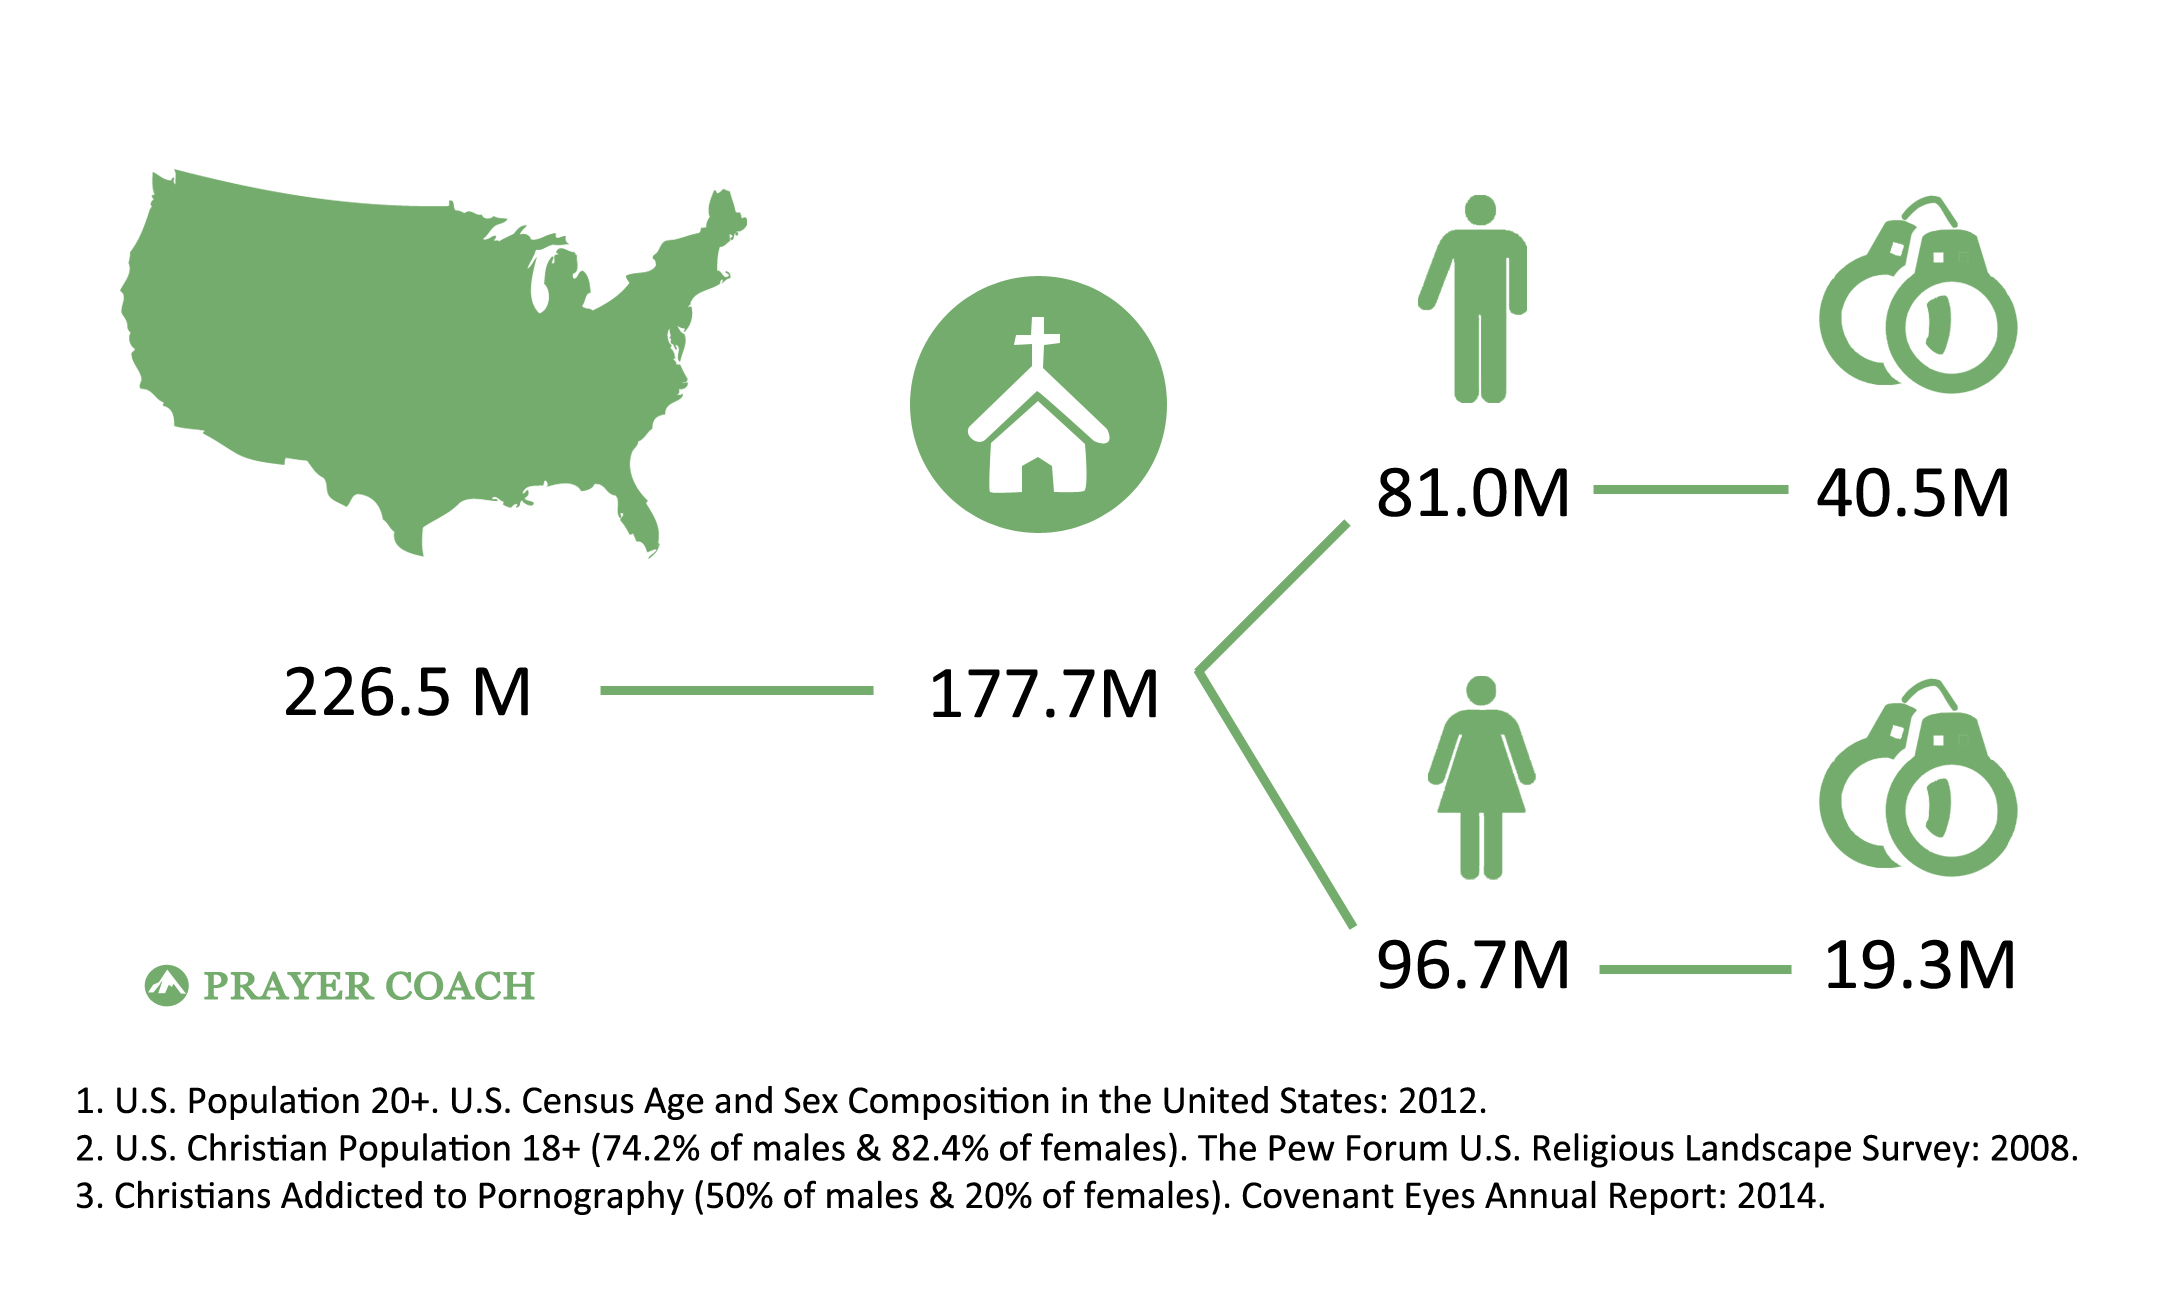 Stats of American Christians Addicted Infographic